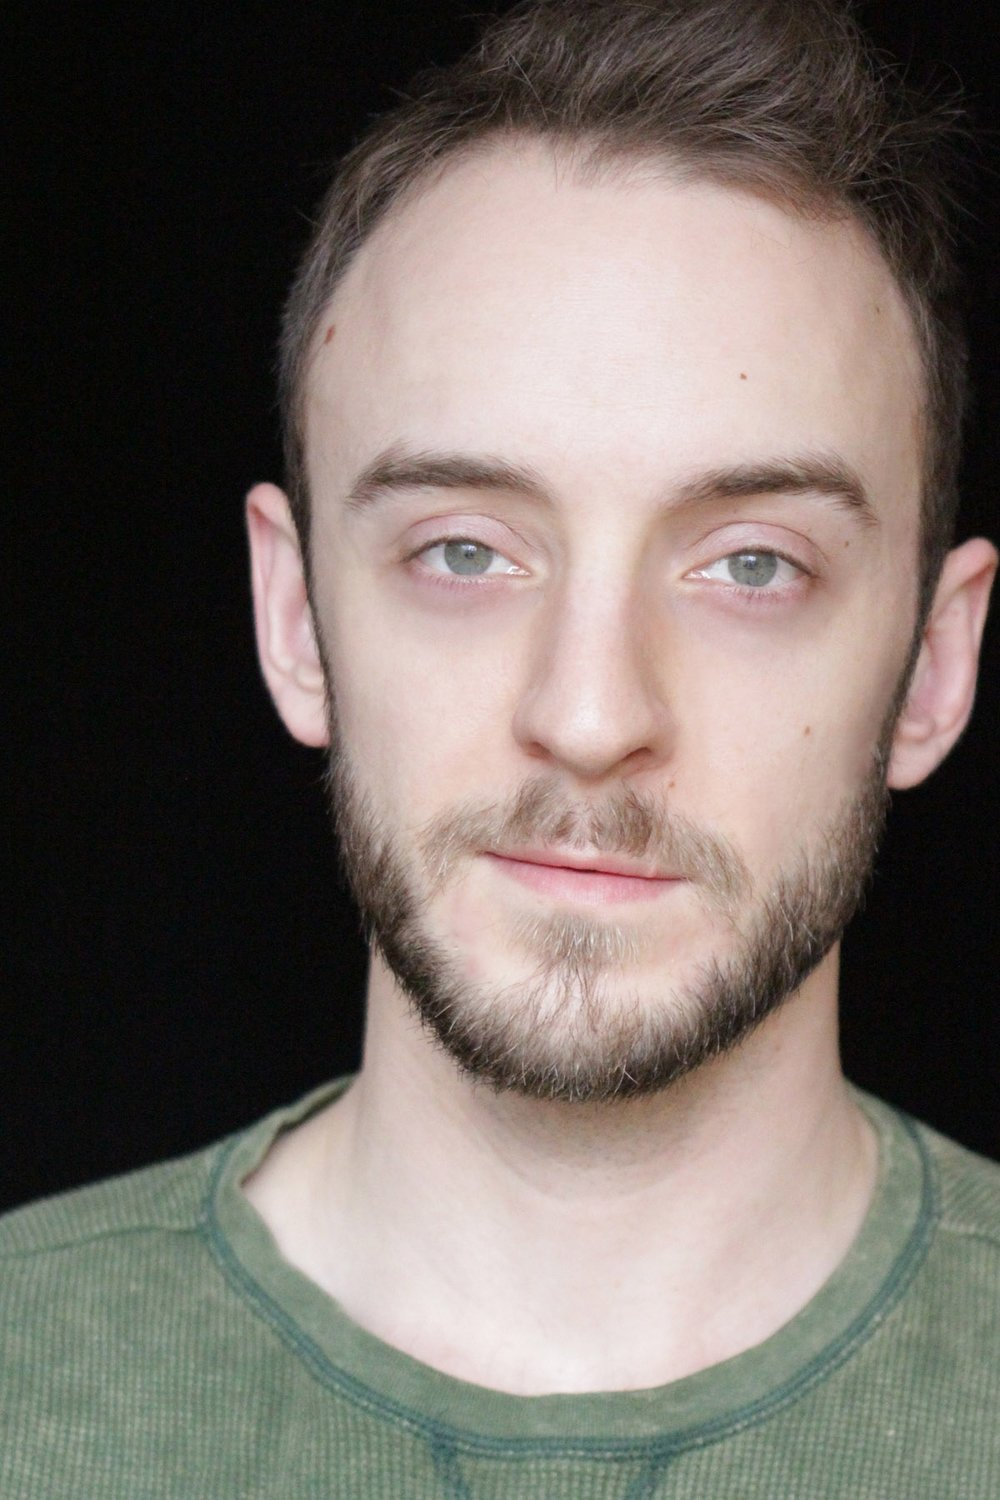 Joel Robert Walker (addison McCubbin) - is a native of Portland and received his training at Marymount Manhattan College in NYC. Joel has appeared in numerous television commercials as well as NBC's Grimm. Other film: Love Eclectic (Kurt), Fremont (Police Officer). Webseries: The Residuals (Richard), The Boys Who Brunch (Lincoln). When he isn't performing, Joel can be found putting the finishing touches on the tiny home that he built (and will likely never feel is completely finished). He plans to live a true gypsy life as long as he's able - following the wind and the work. Upcoming projects: Trails (Broadway Rose), Holiday Inn, & Kiss Me Kate (5th Avenue Theatre).